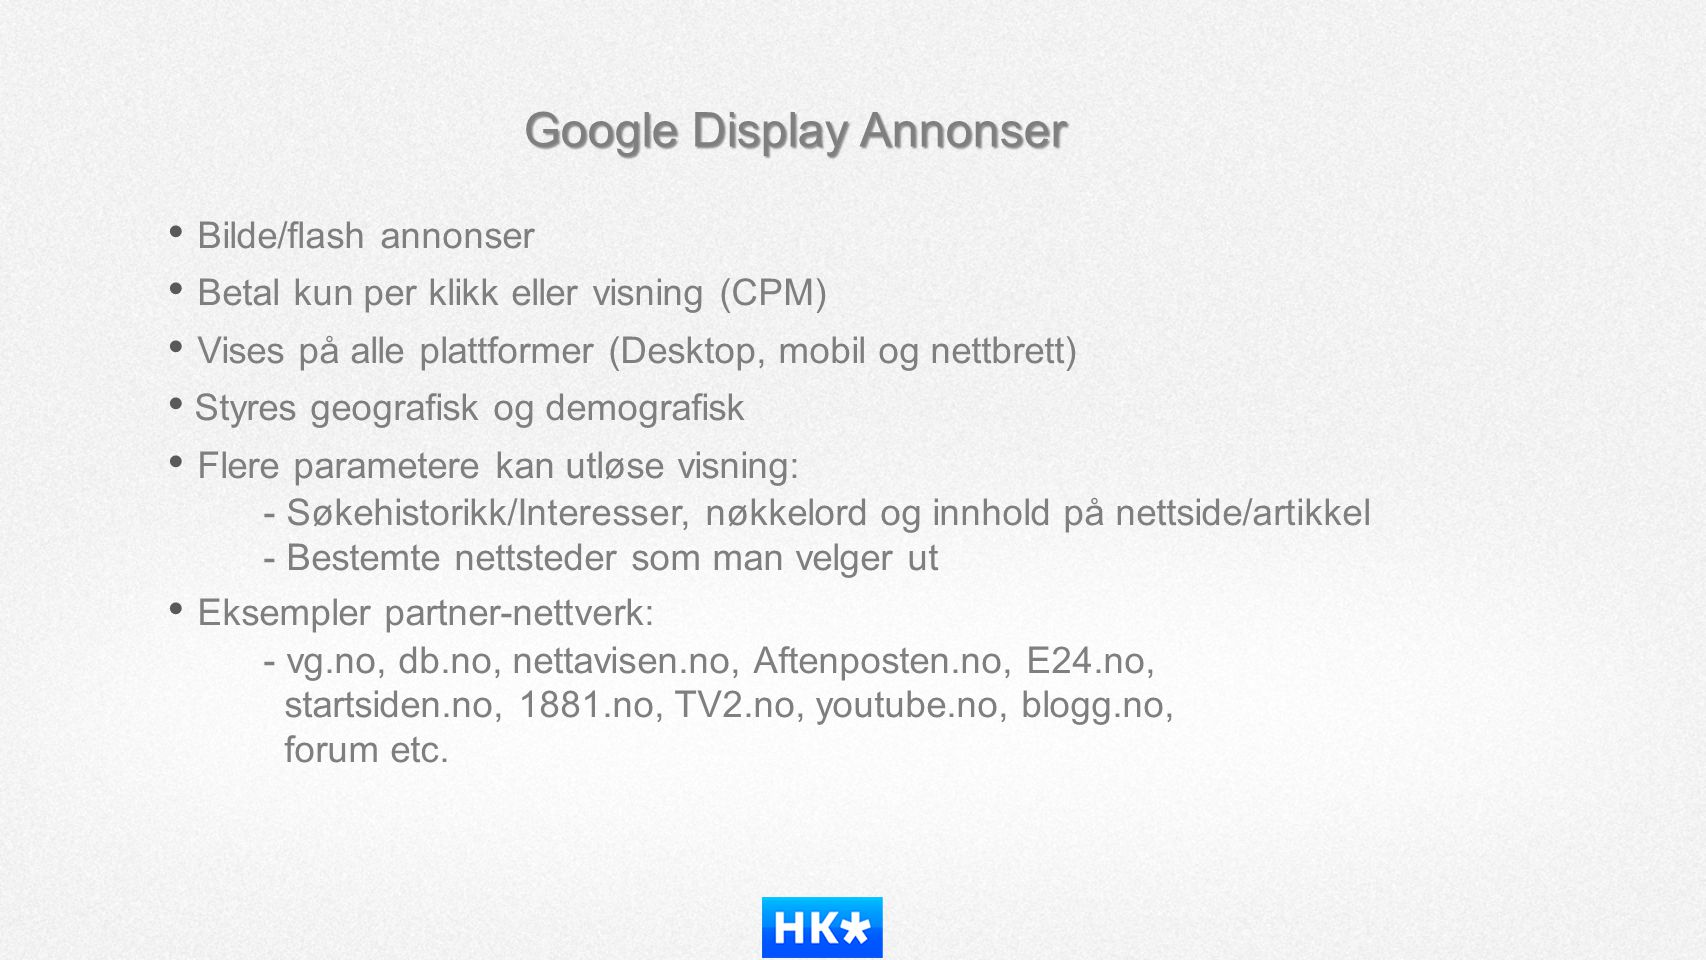 Google Display Annonser